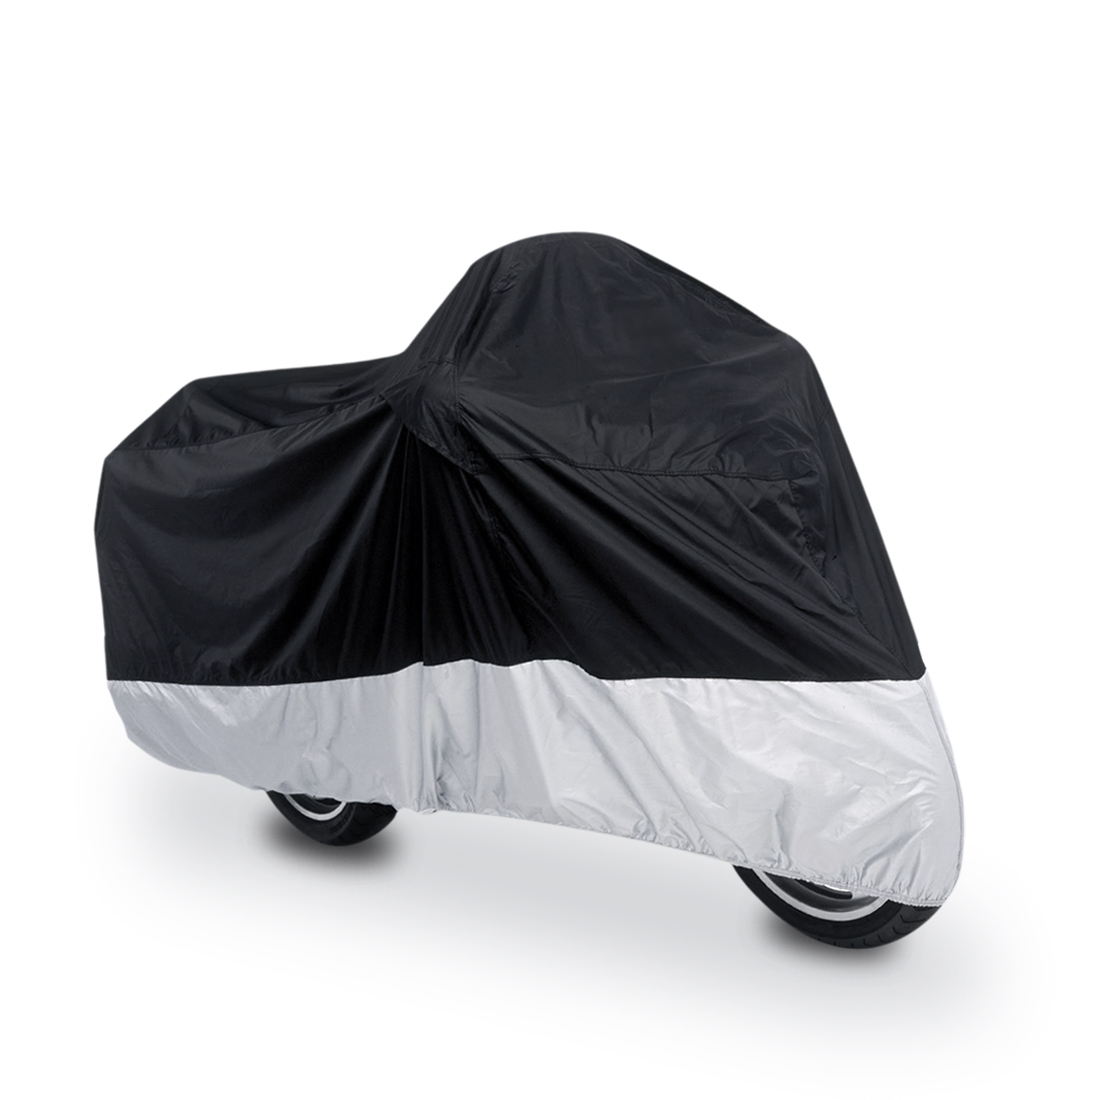 XXXL 190T Motorcycle Cover Black+Silver Outdoor Waterproof Rain Dust Protector